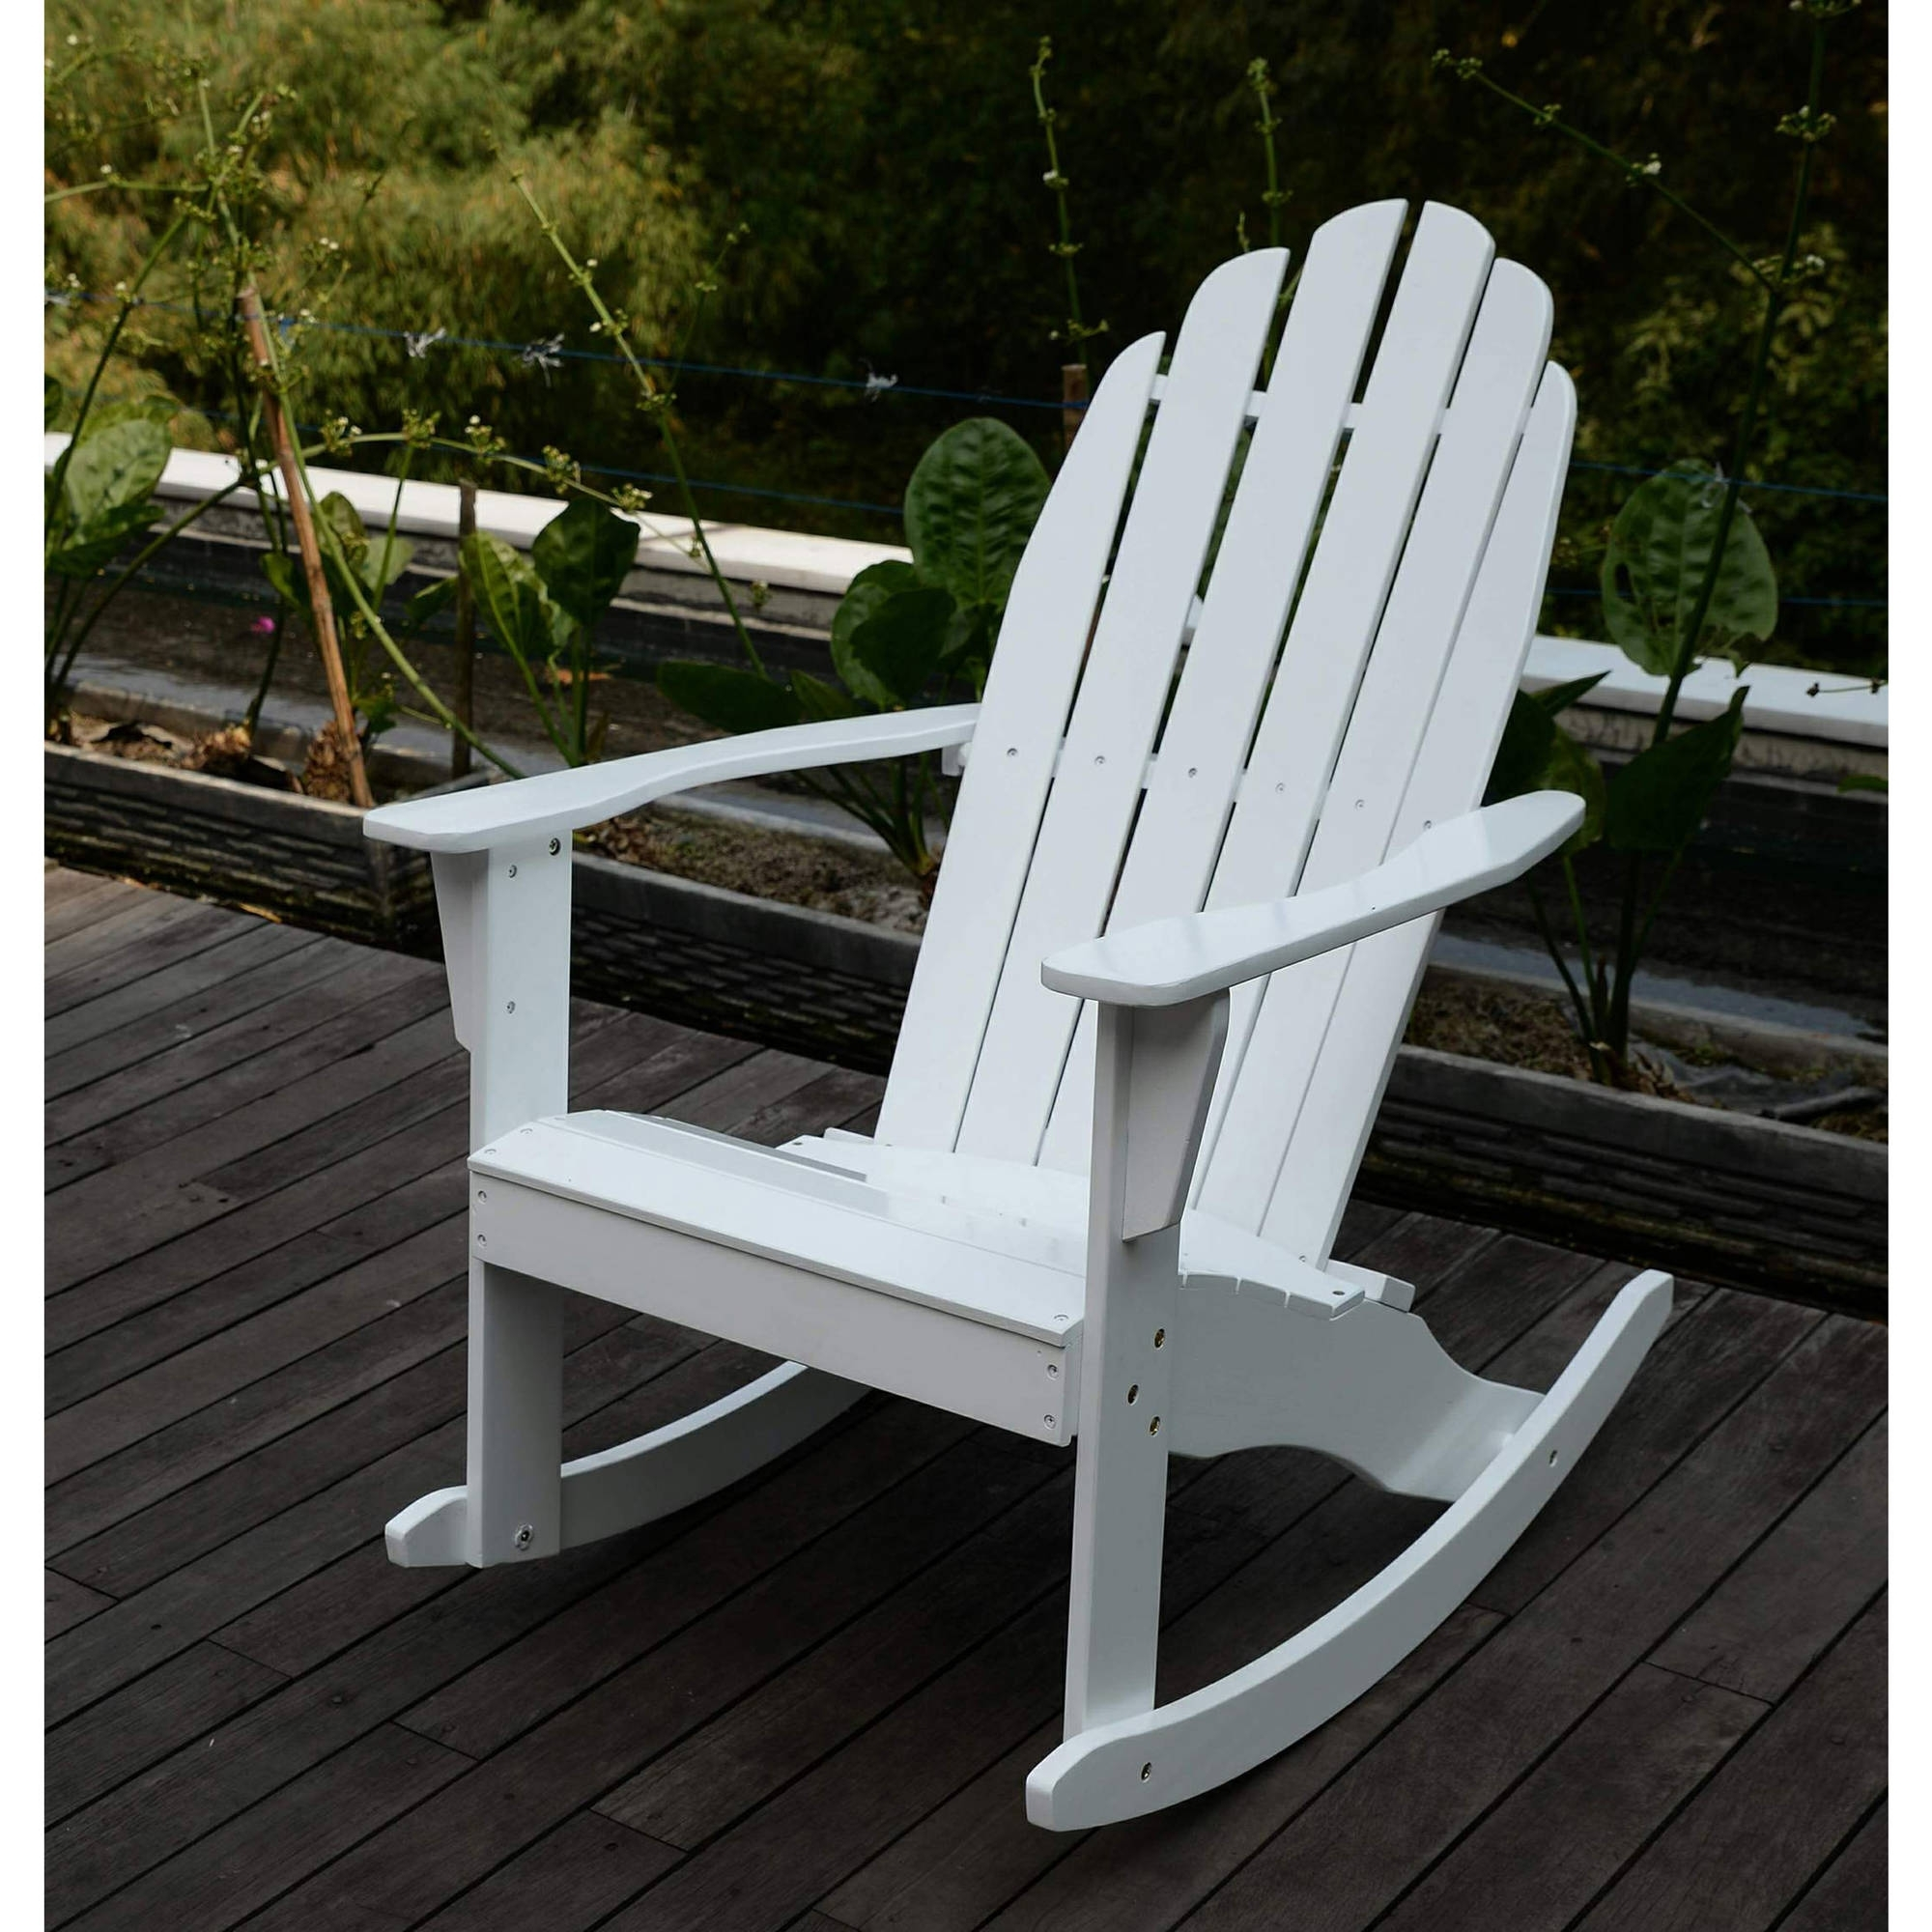 Adirondack Rocking Chair, White – Walmart In 2019 Walmart Rocking Chairs (View 1 of 20)